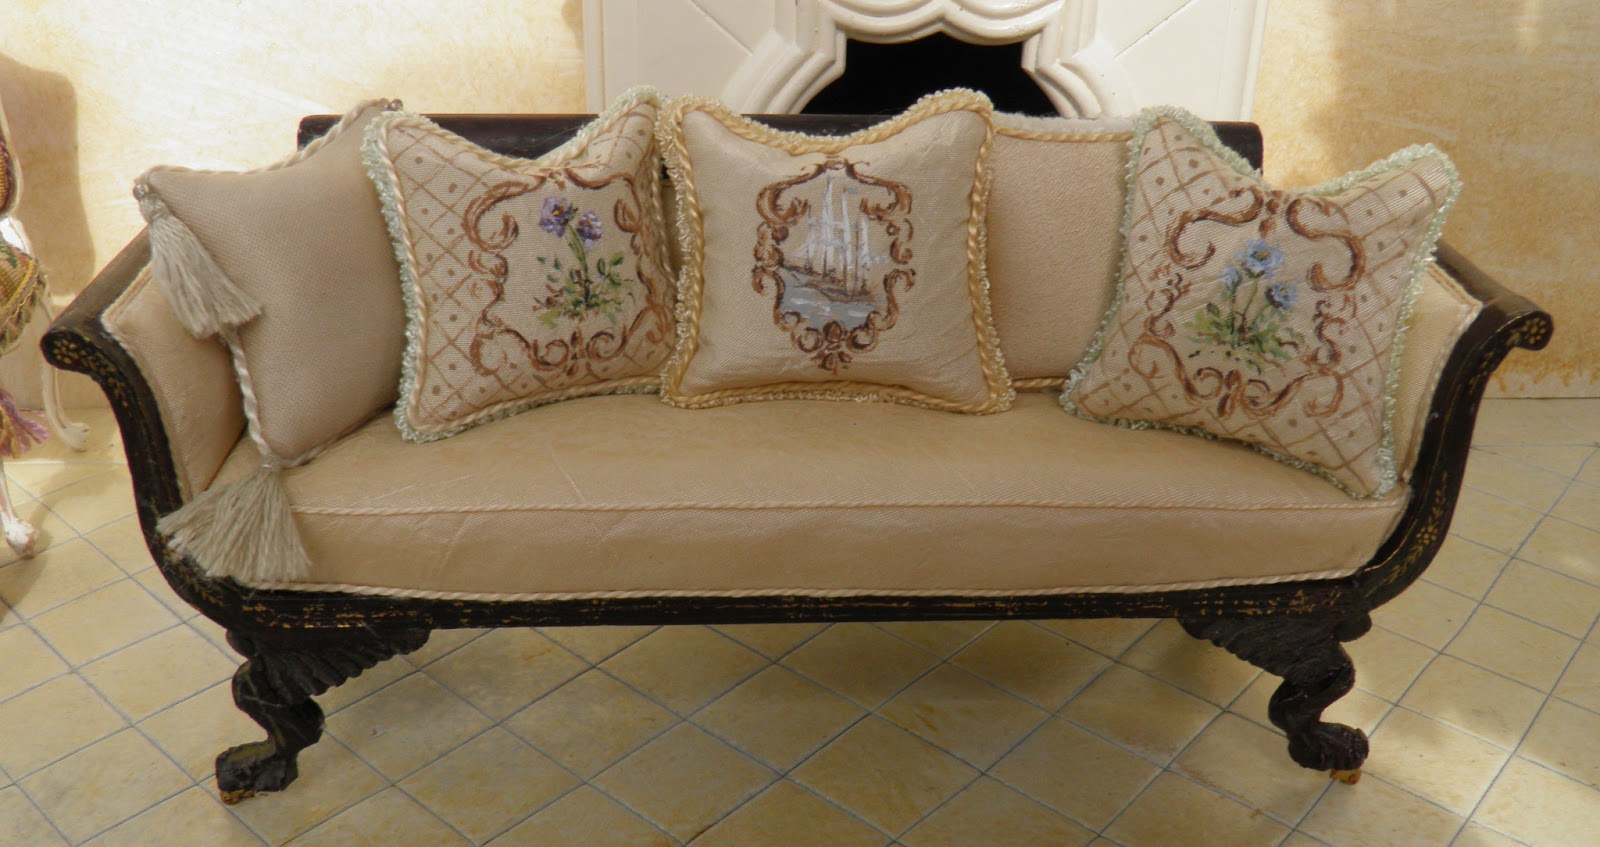 white fluffy sofa cushions wholesale sofas and loveseats from big to miniature is huge